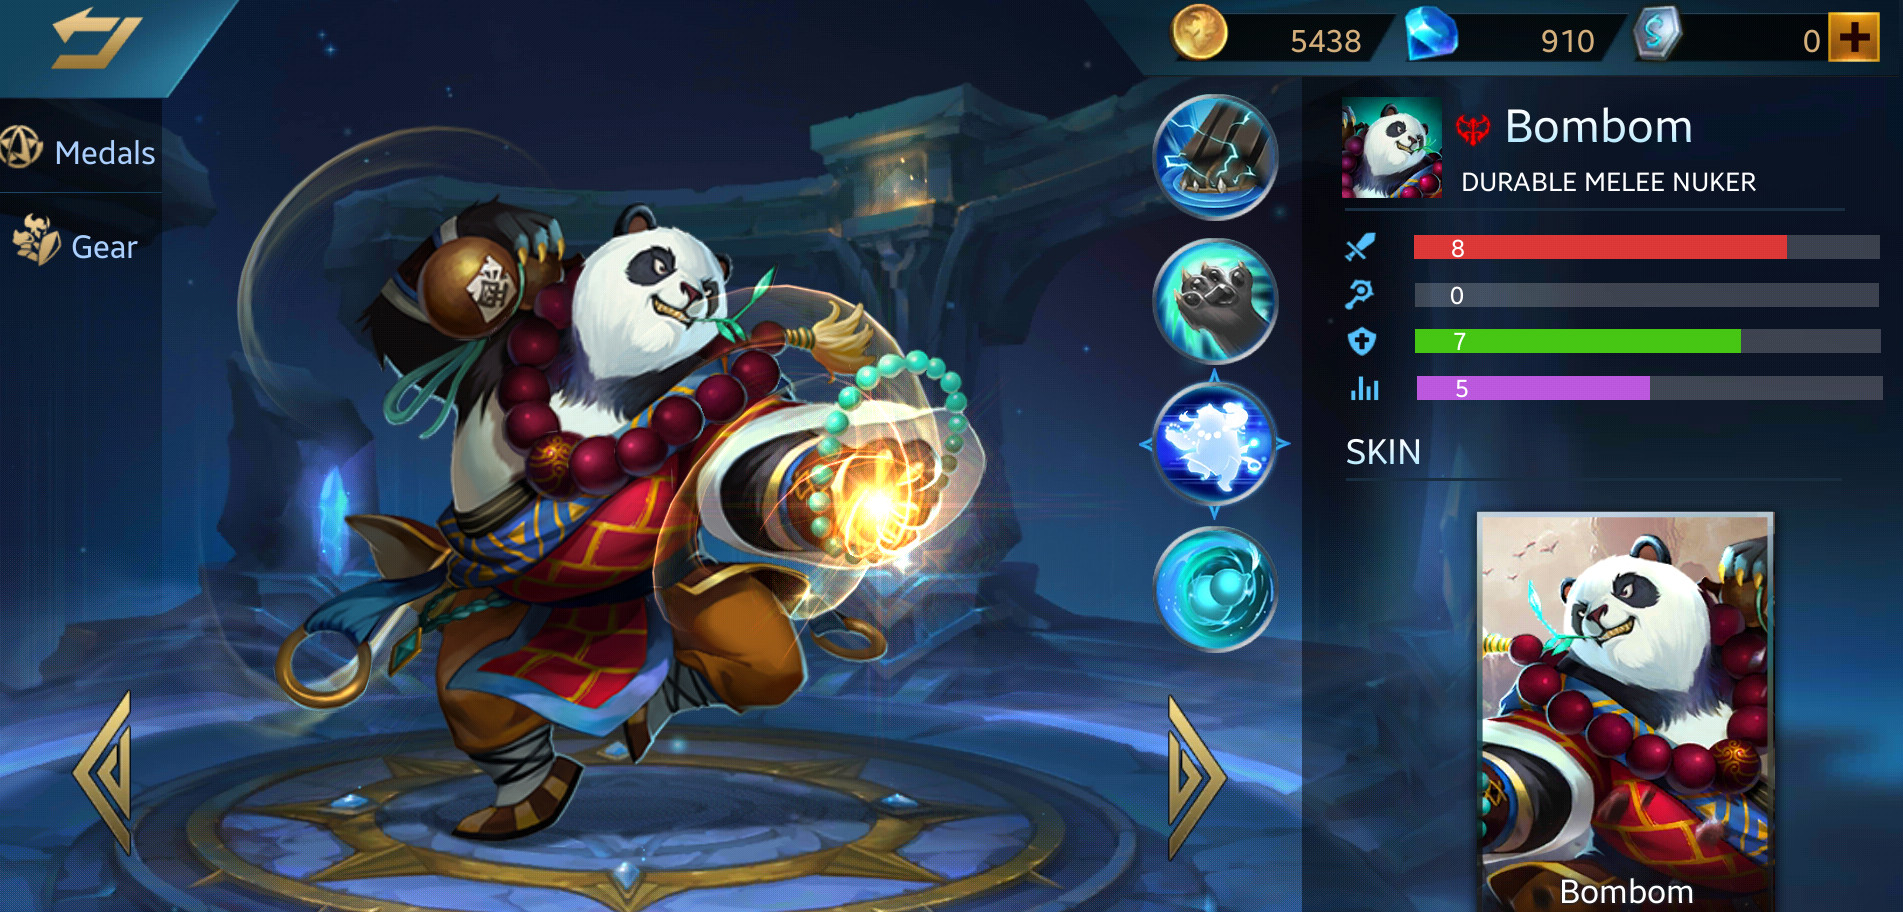 Photo of Heroes Evolved Bombom Build Guide